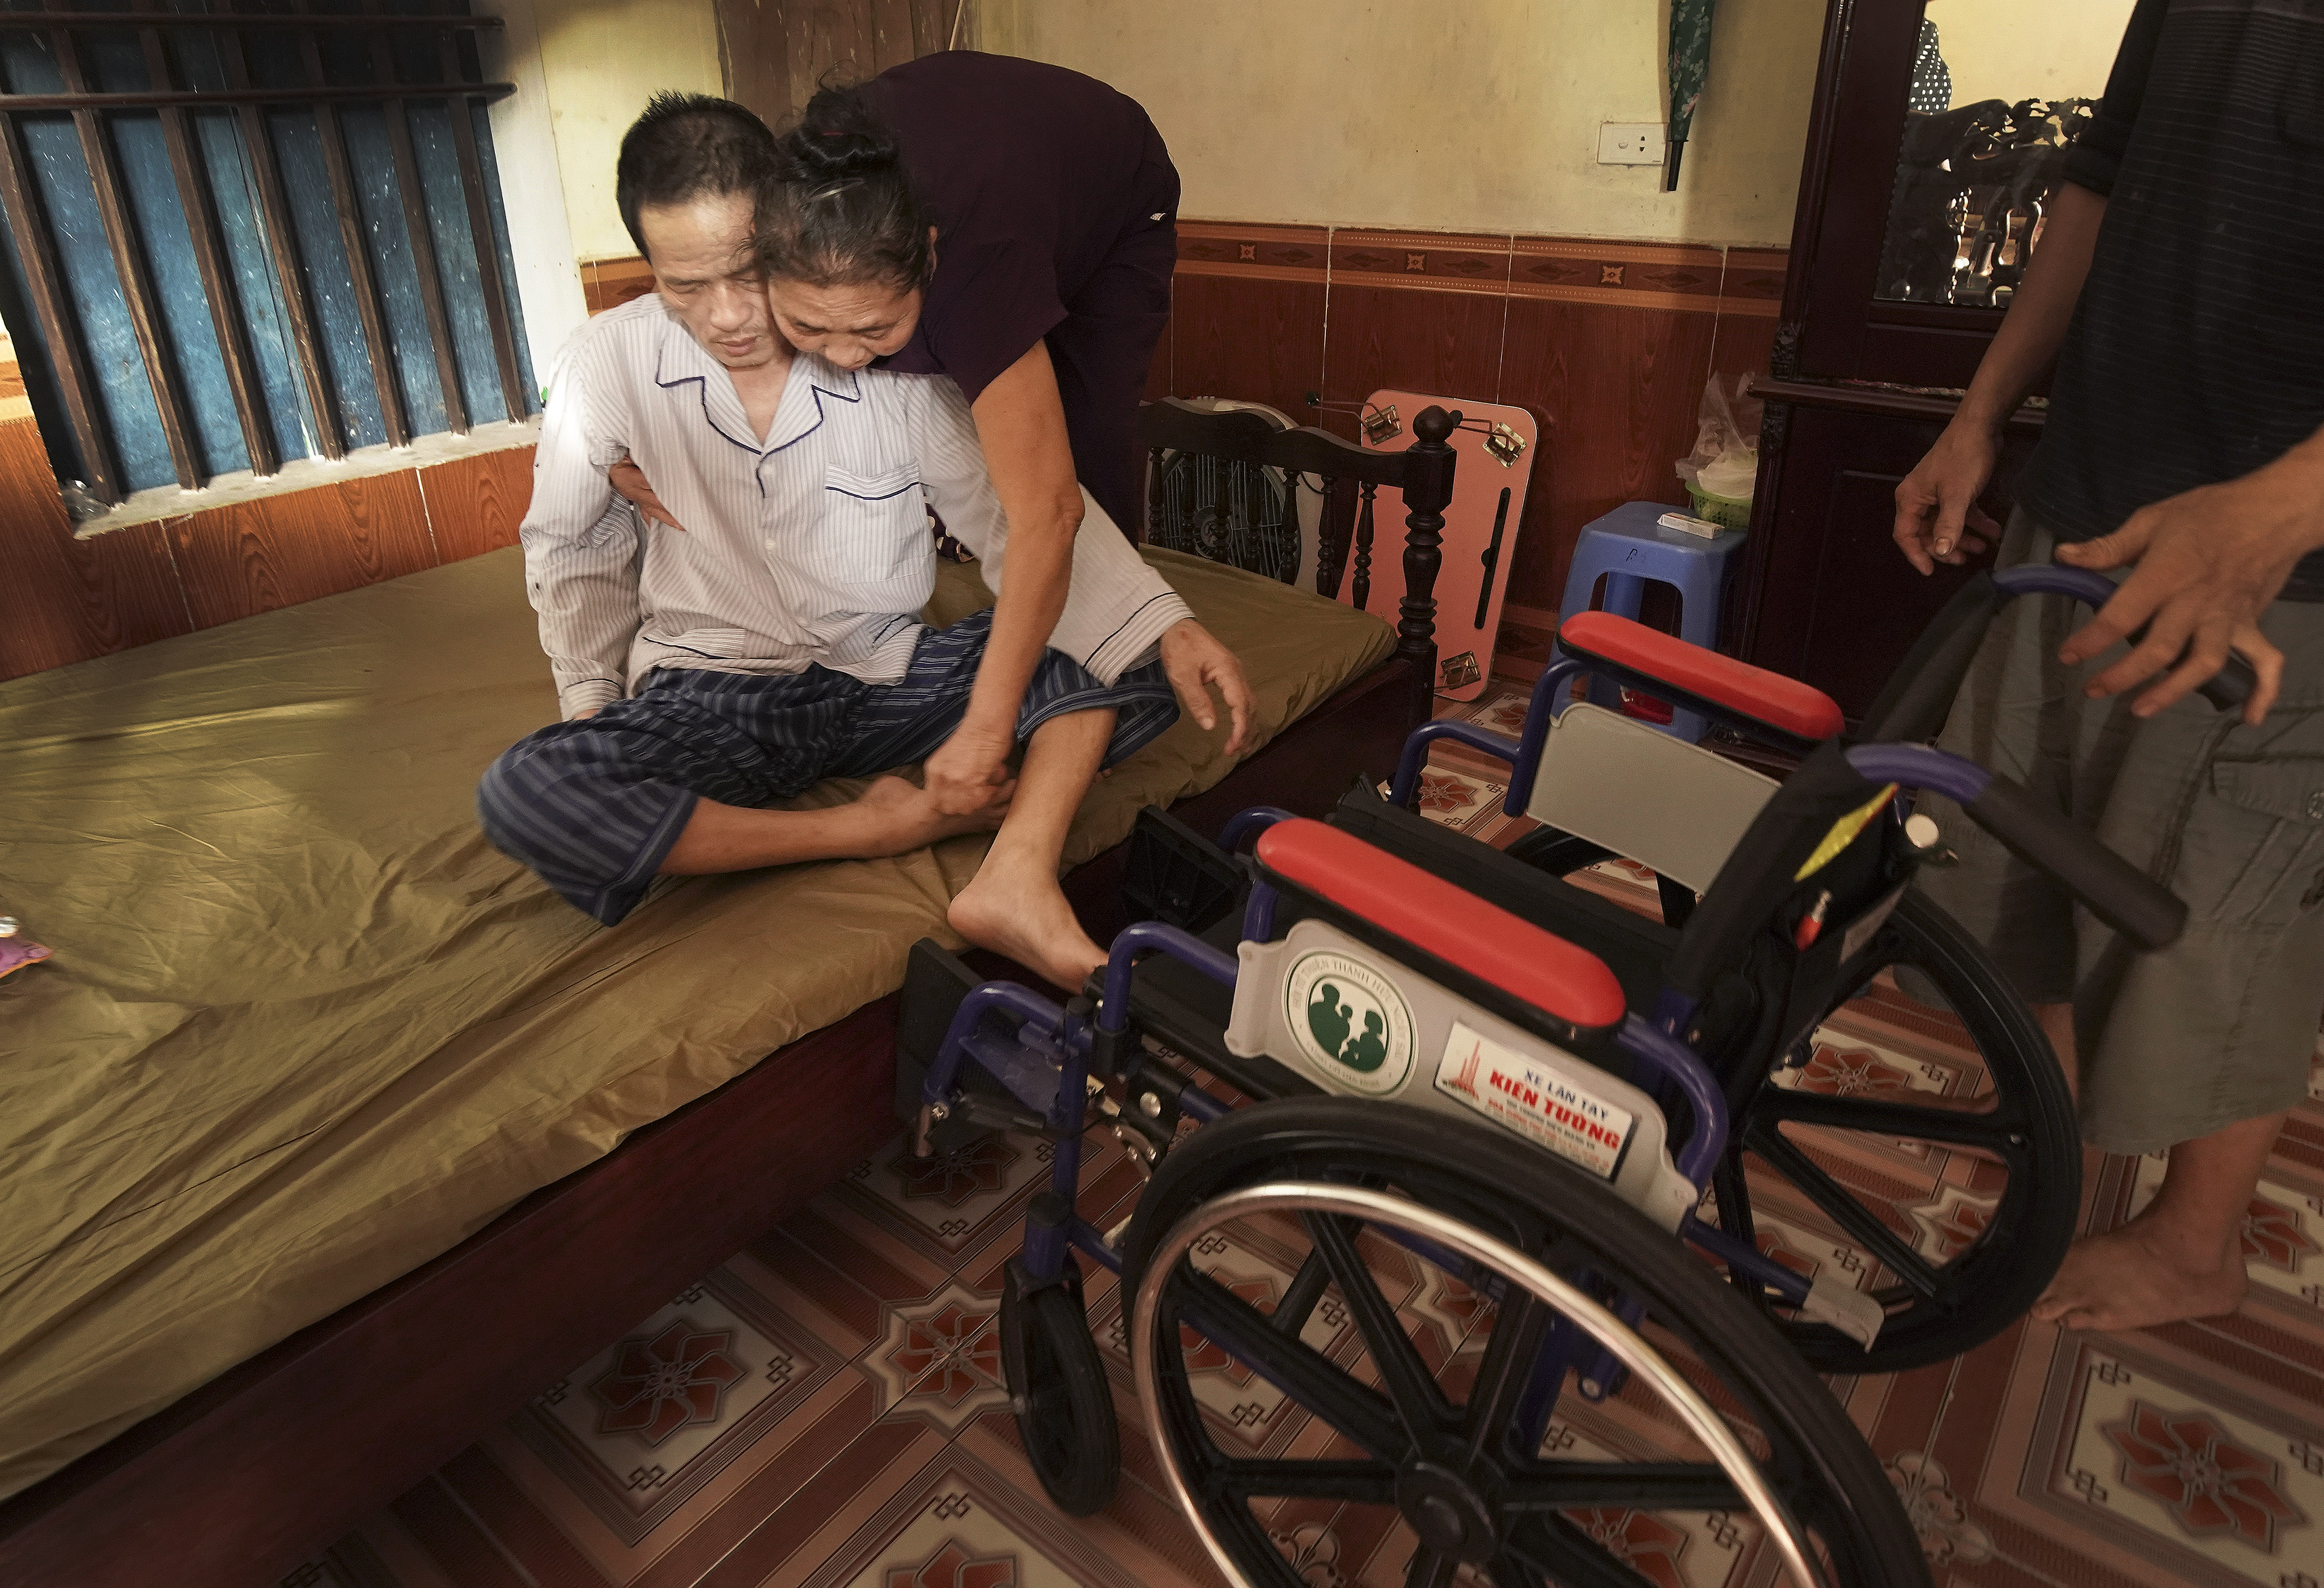 Bao Dinh Tran is helped by his wife Quyen Thi Mai into his wheelchair given to him by Latter-day Saints Charities in Hanoi, Vietnam on Saturday, Nov. 16, 2019.